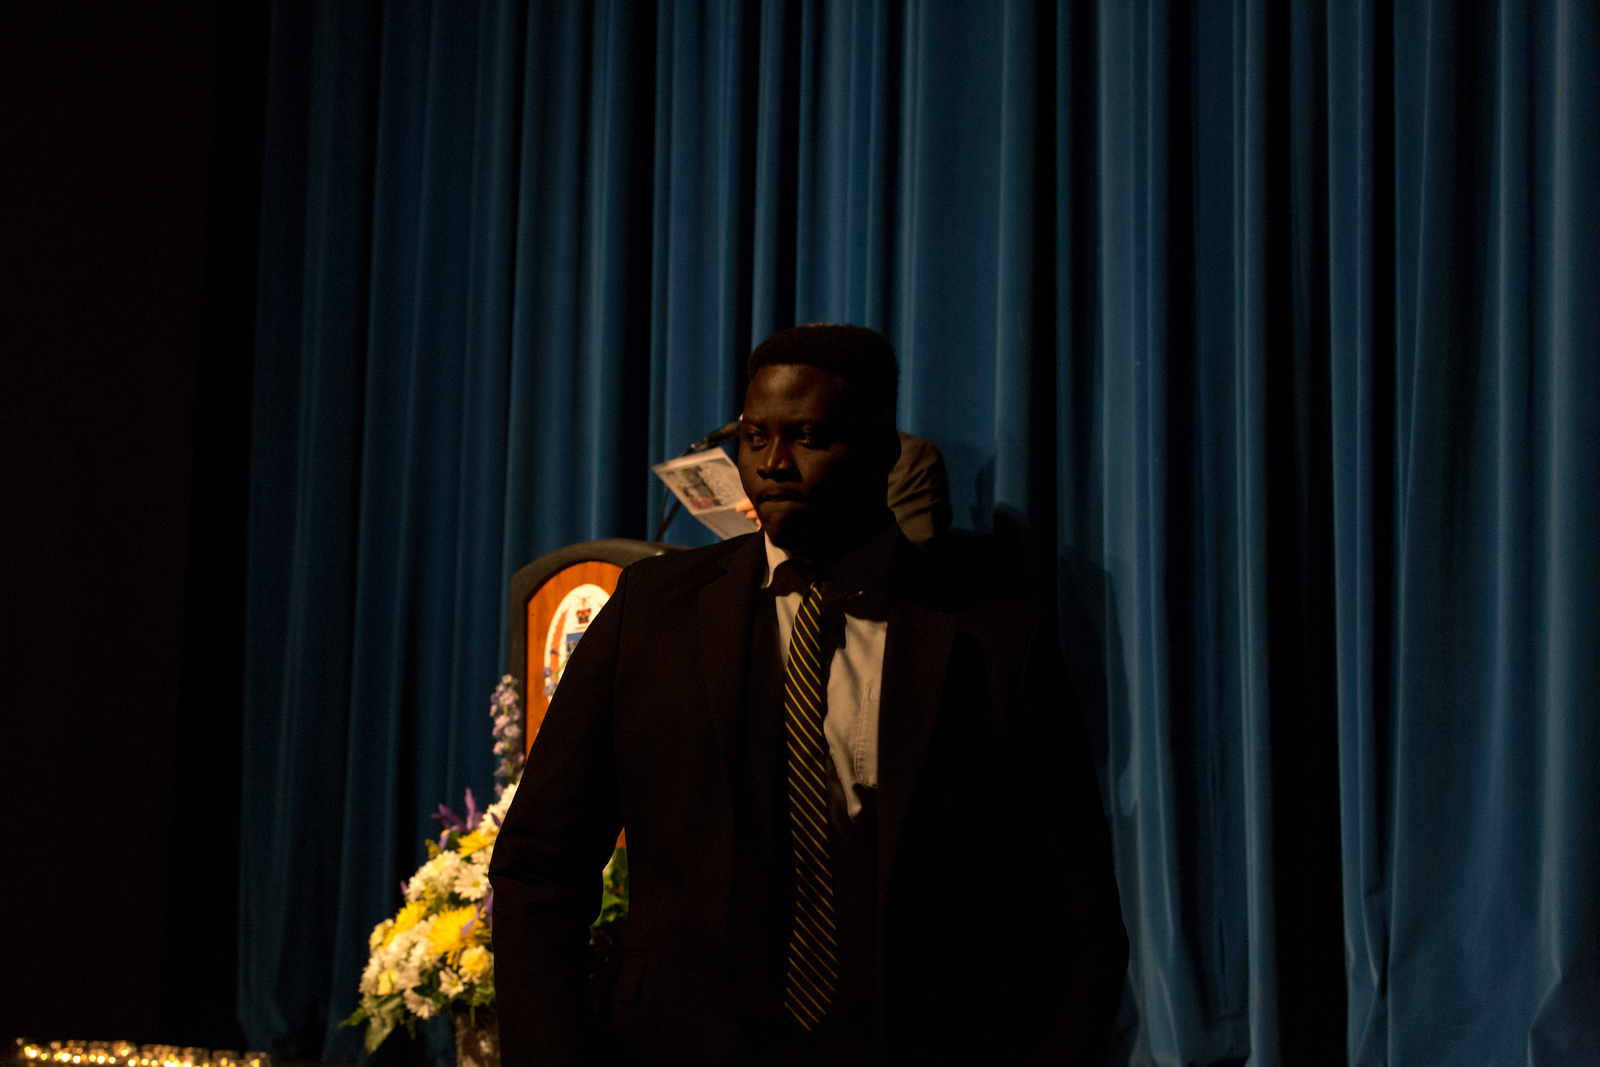 Christian Quartey at Senior Service